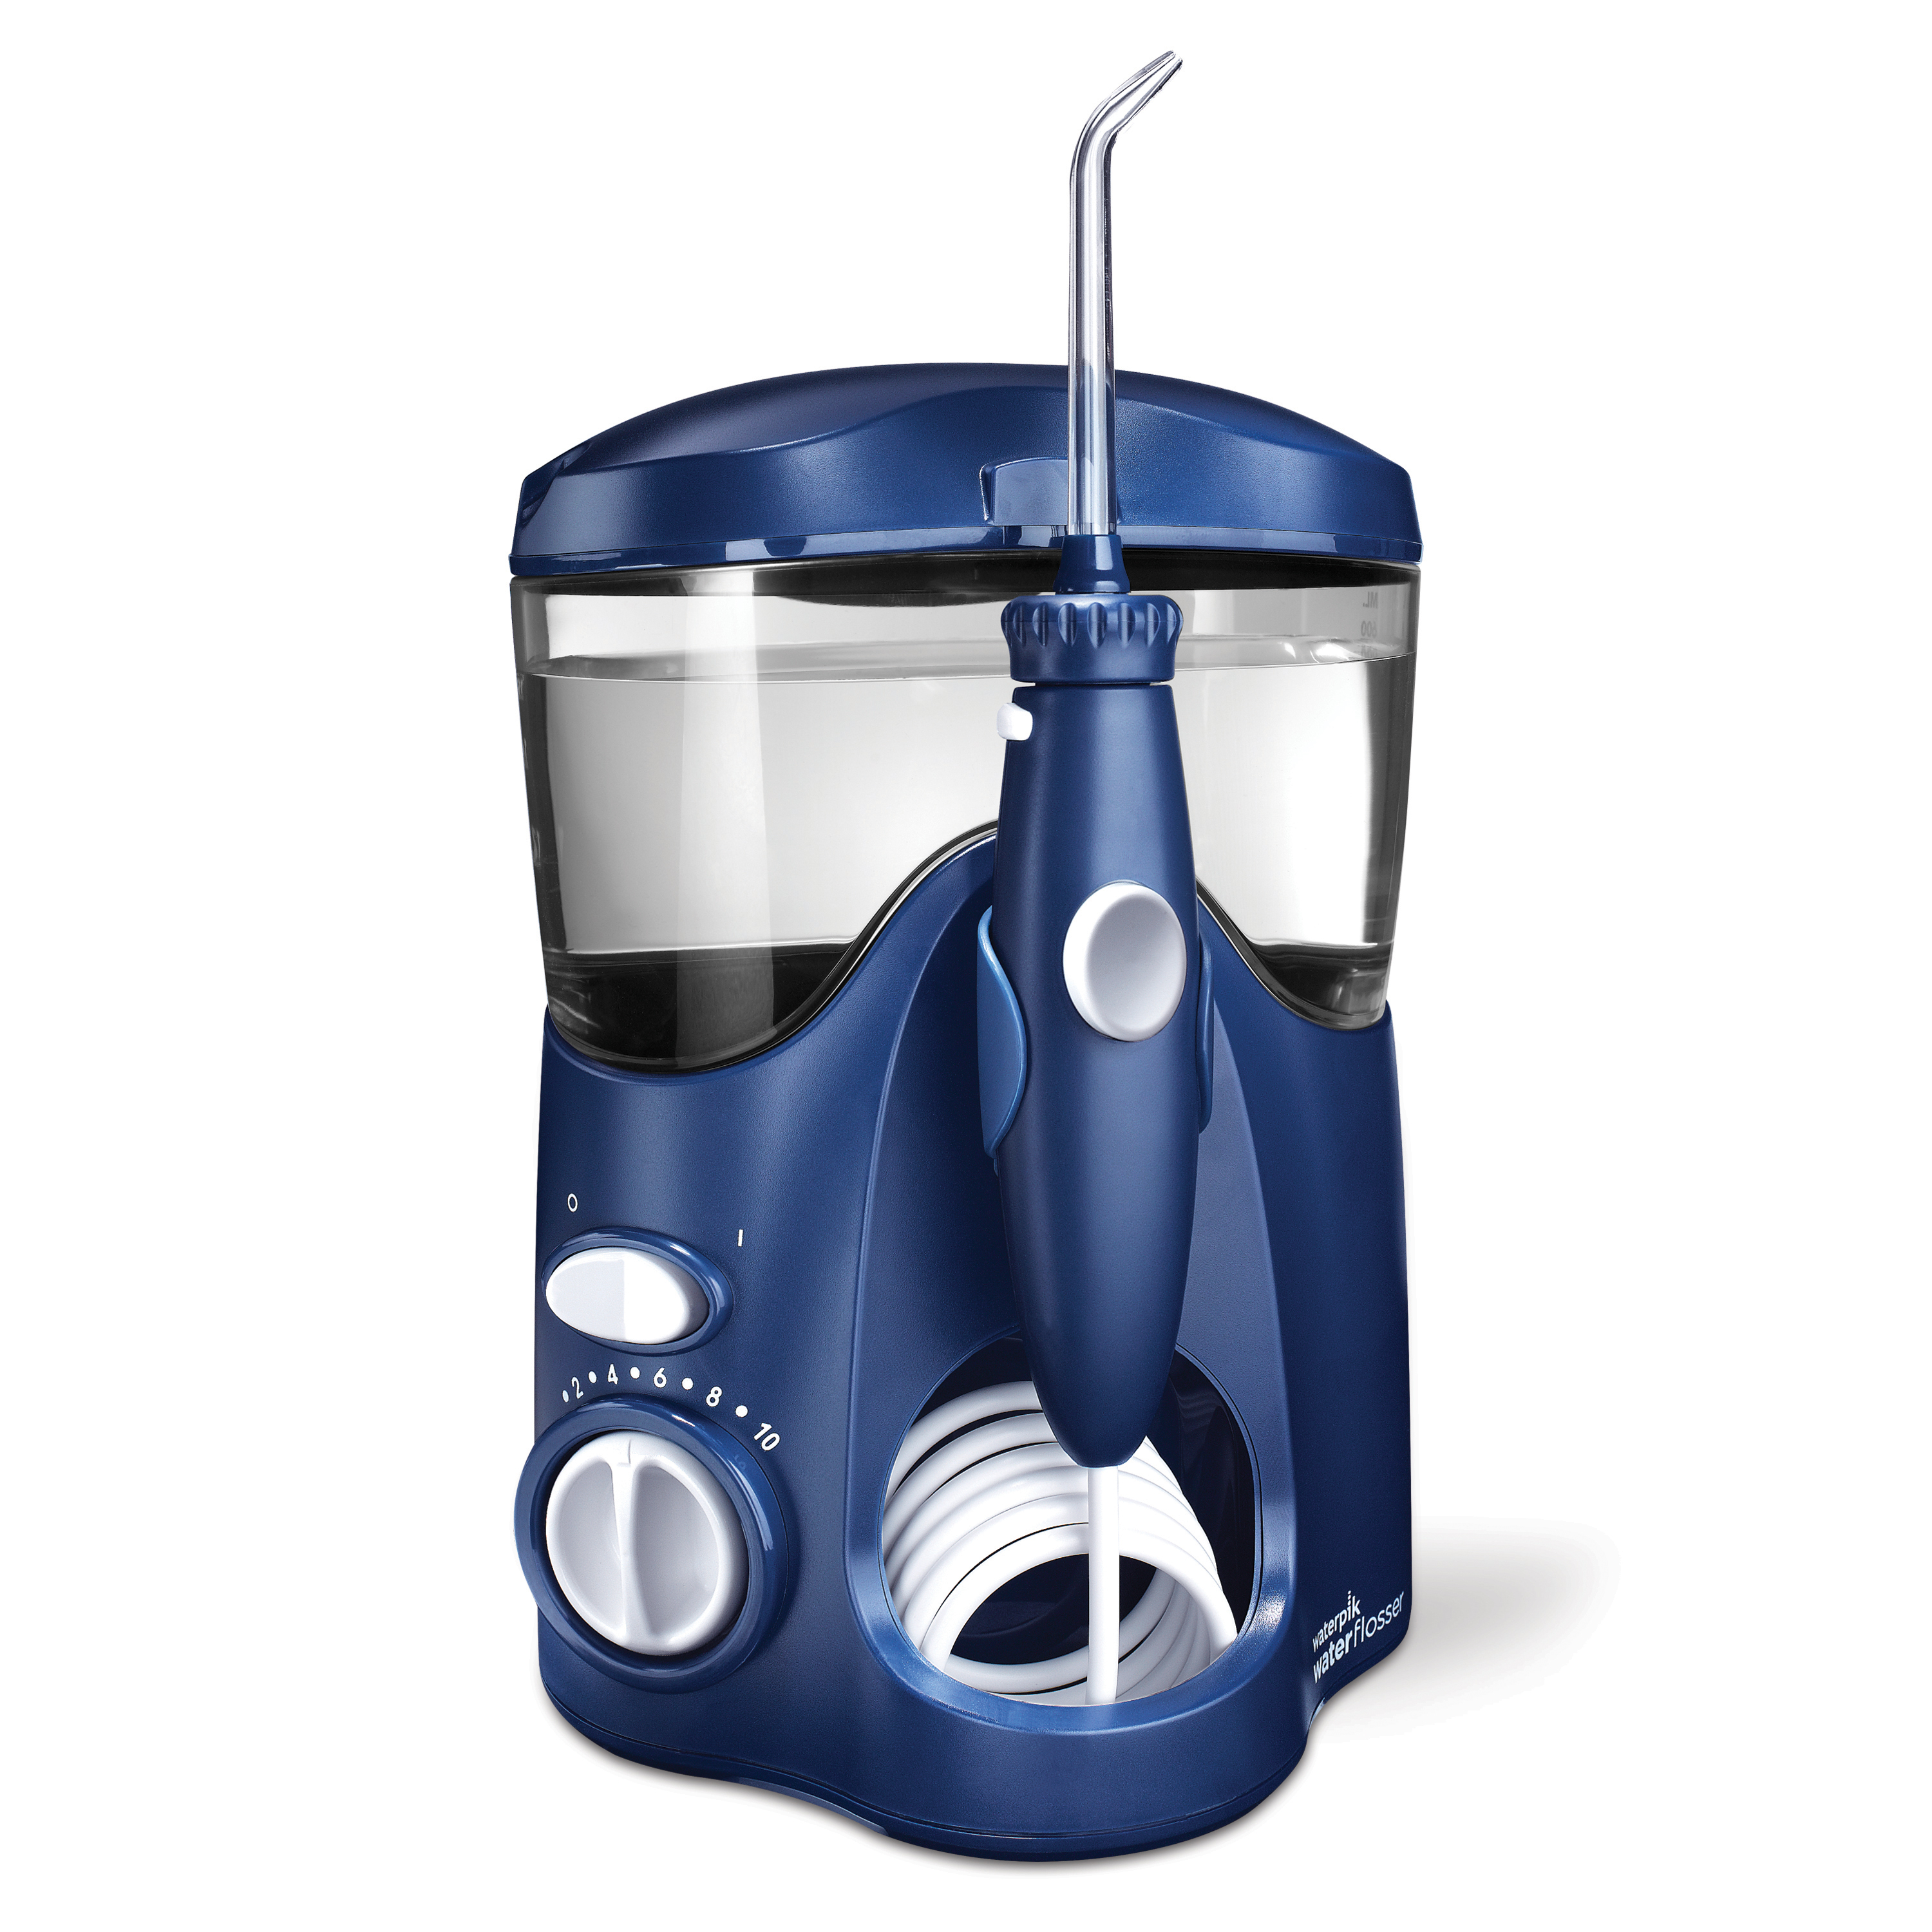 Waterpik Ultra Countertop Water Flosser WP-113, Blue